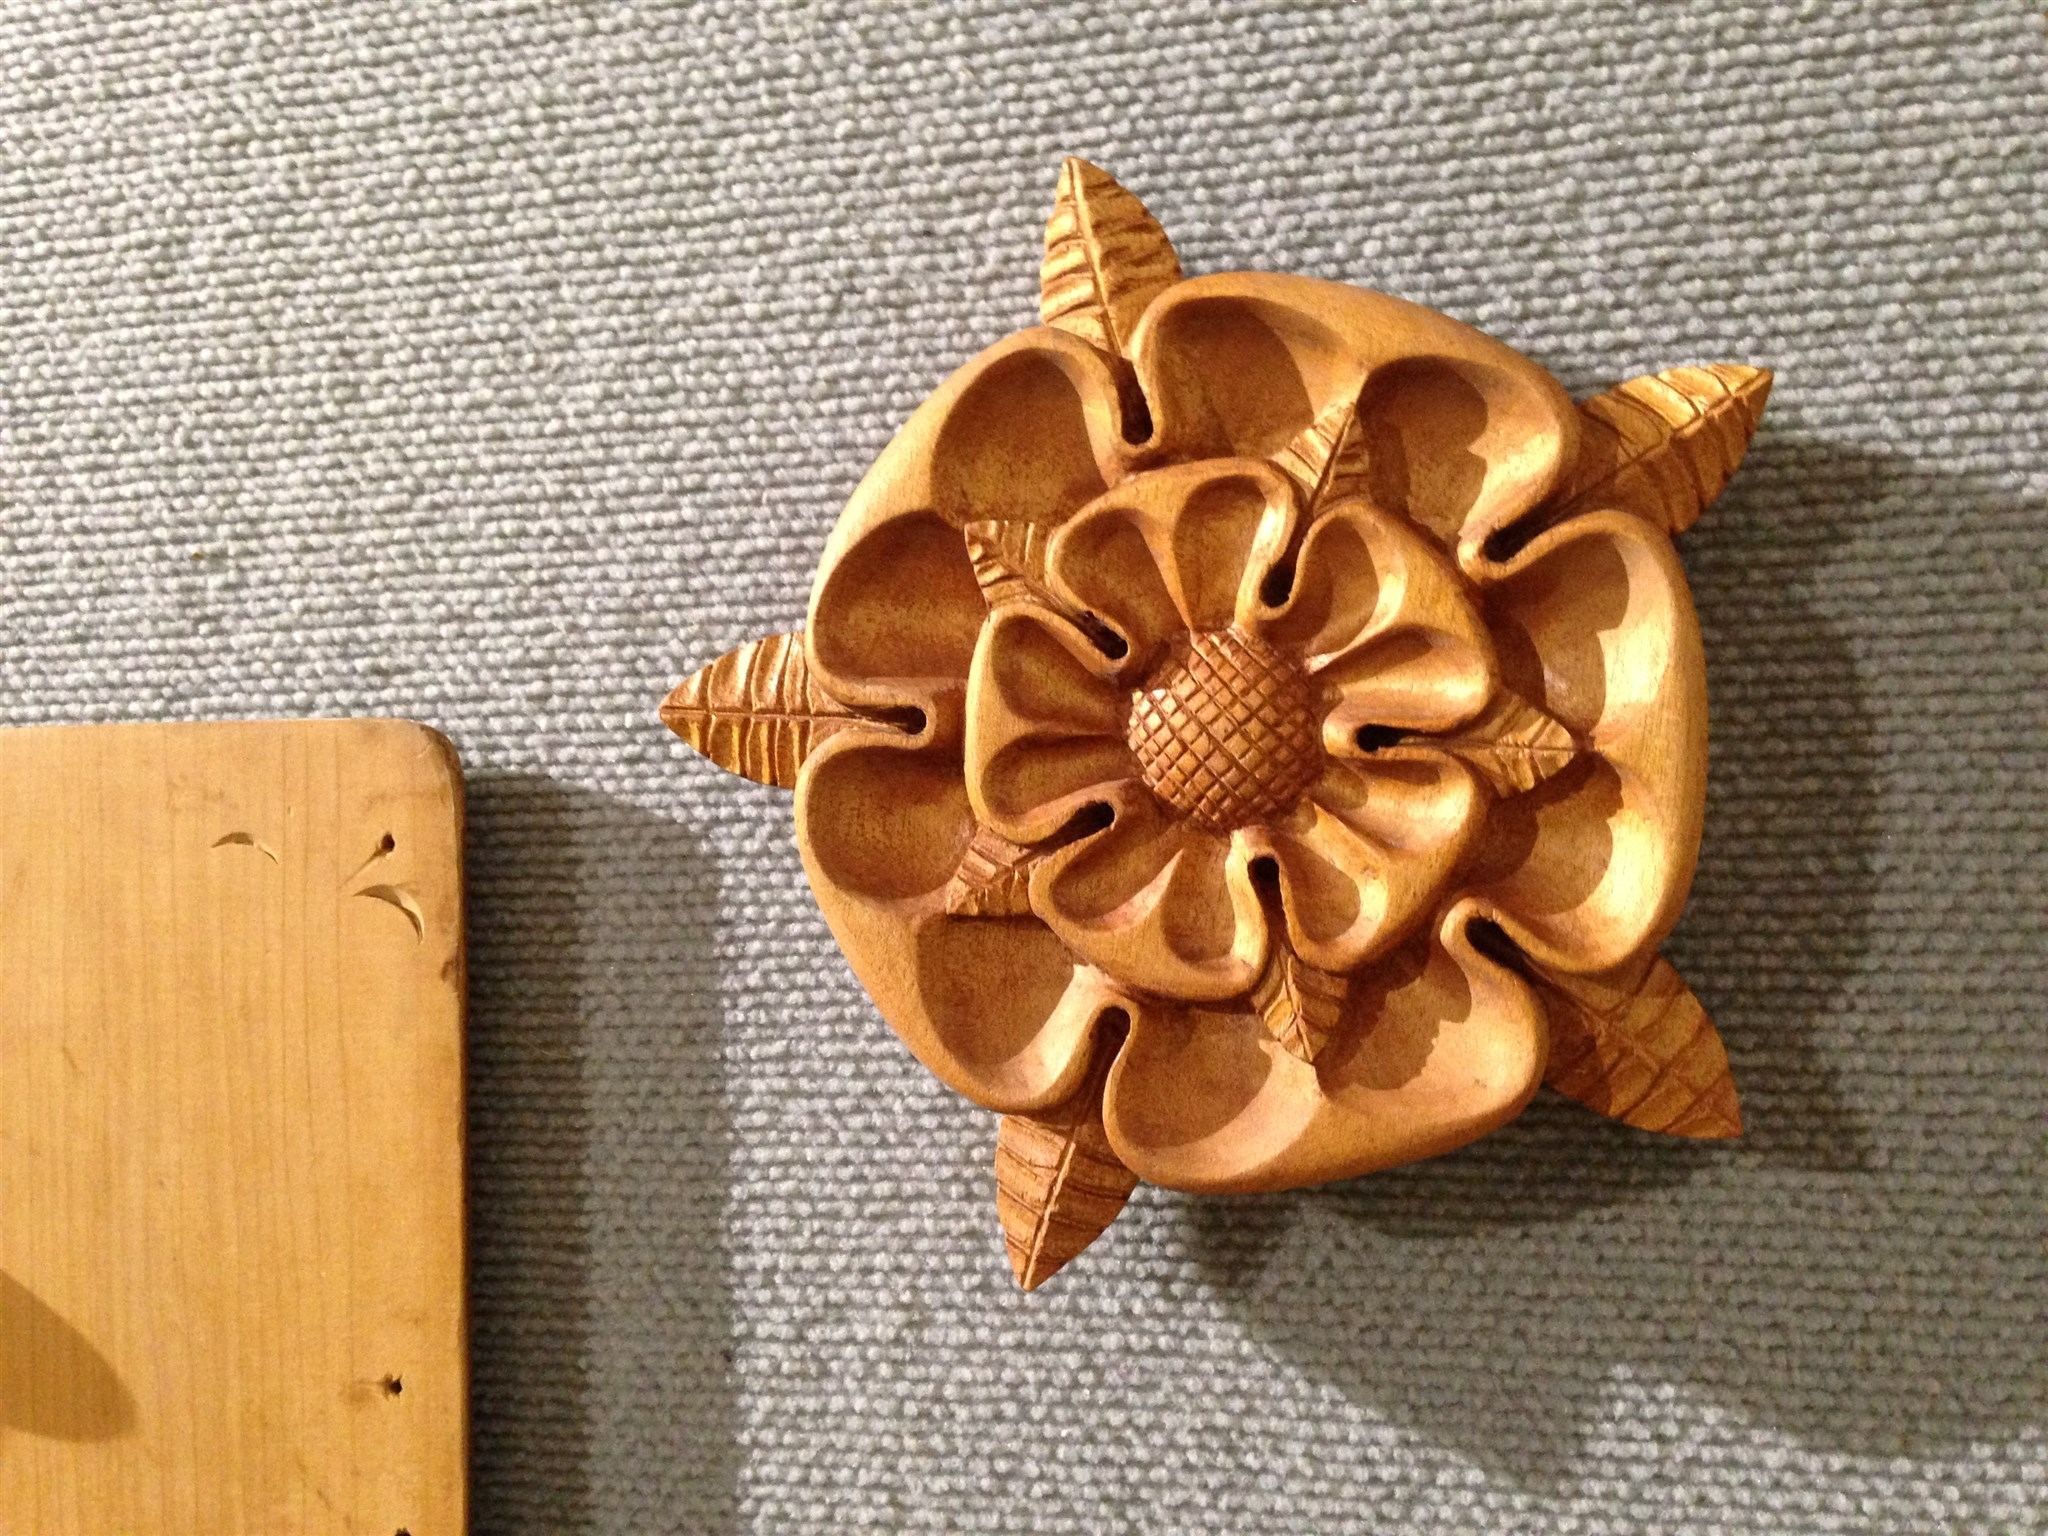 a wooden flower crafted for the Canberra timber show